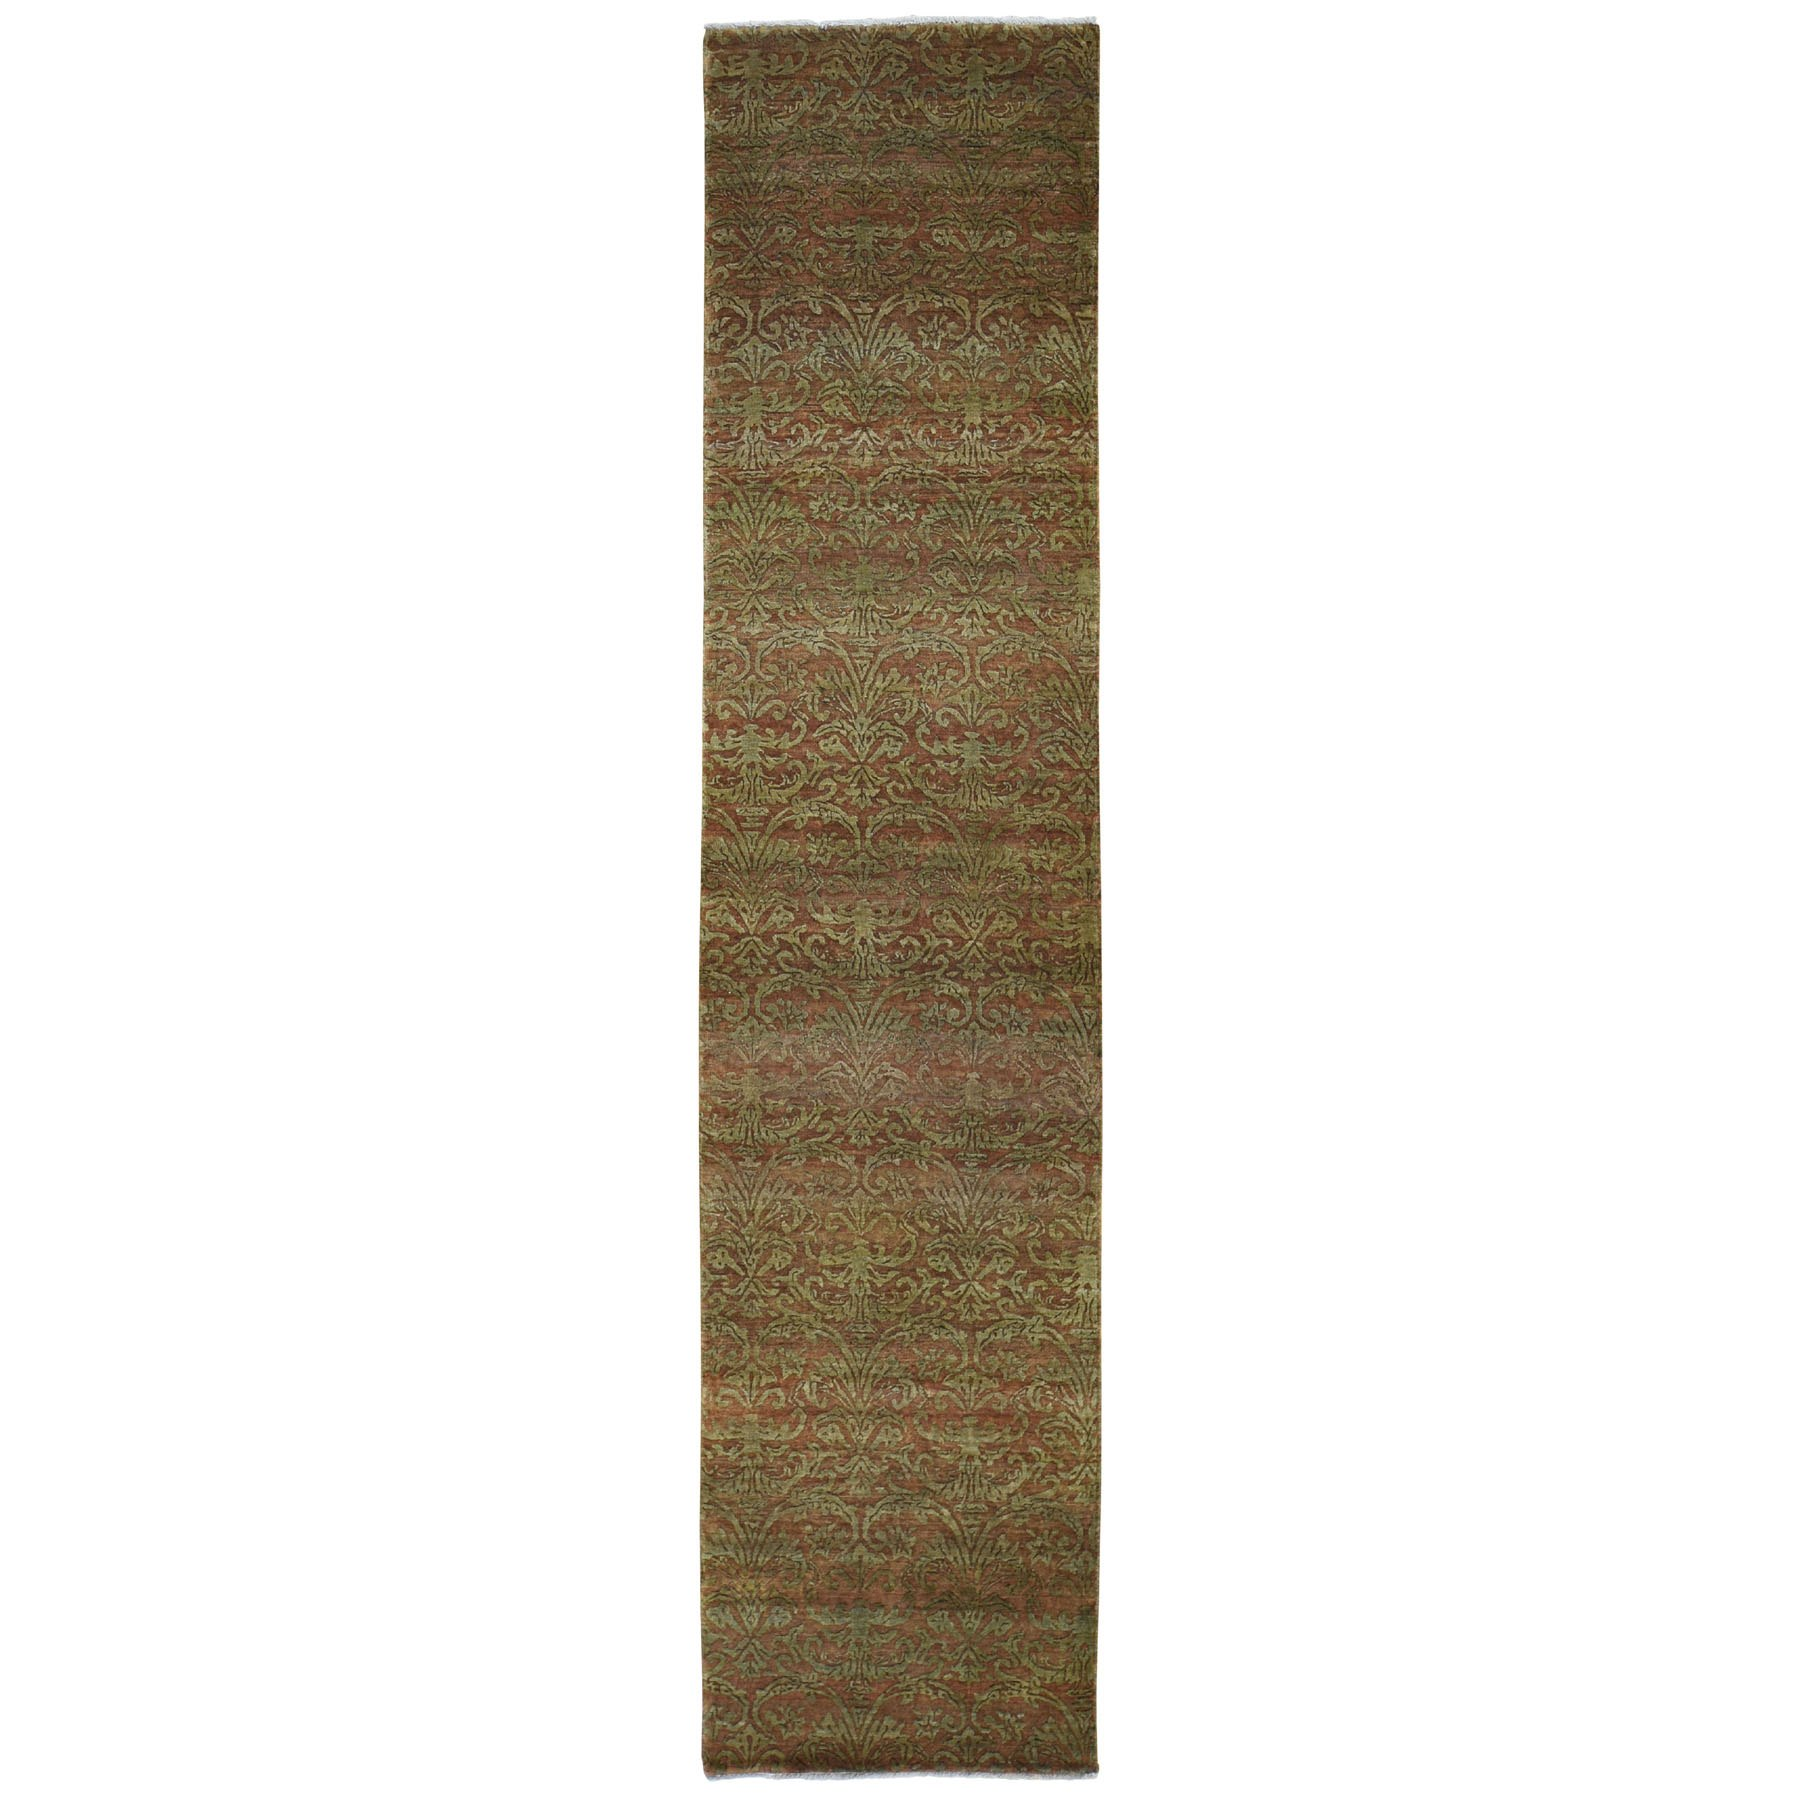 Modern-and-Contemporary-Hand-Knotted-Rug-240055